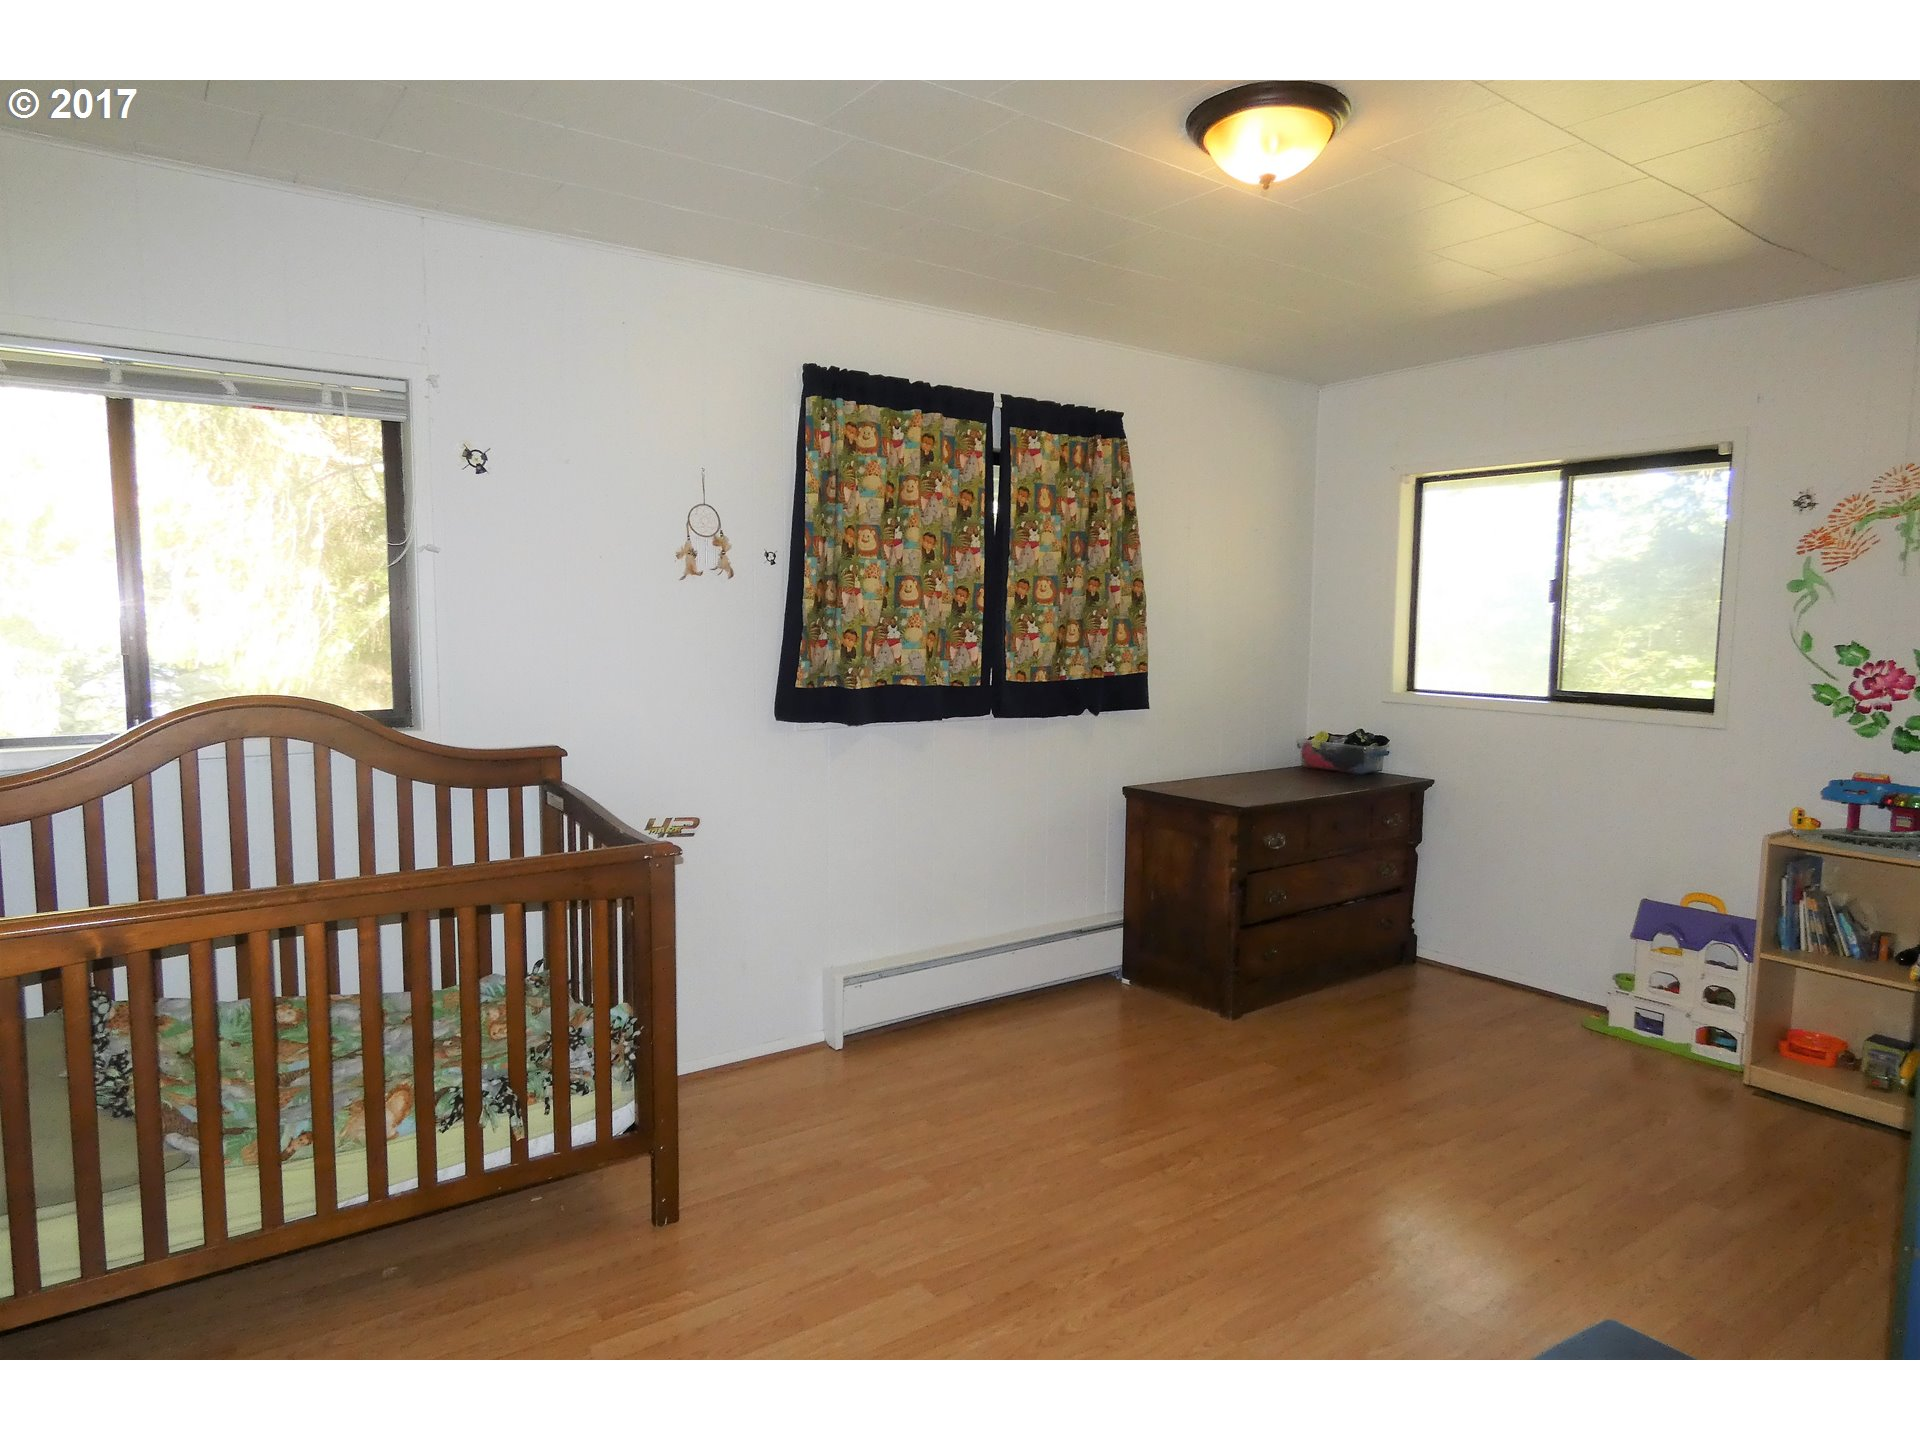 253 COAST GUARD HILL RD, PORT ORFORD, OR 97465  Photo 8